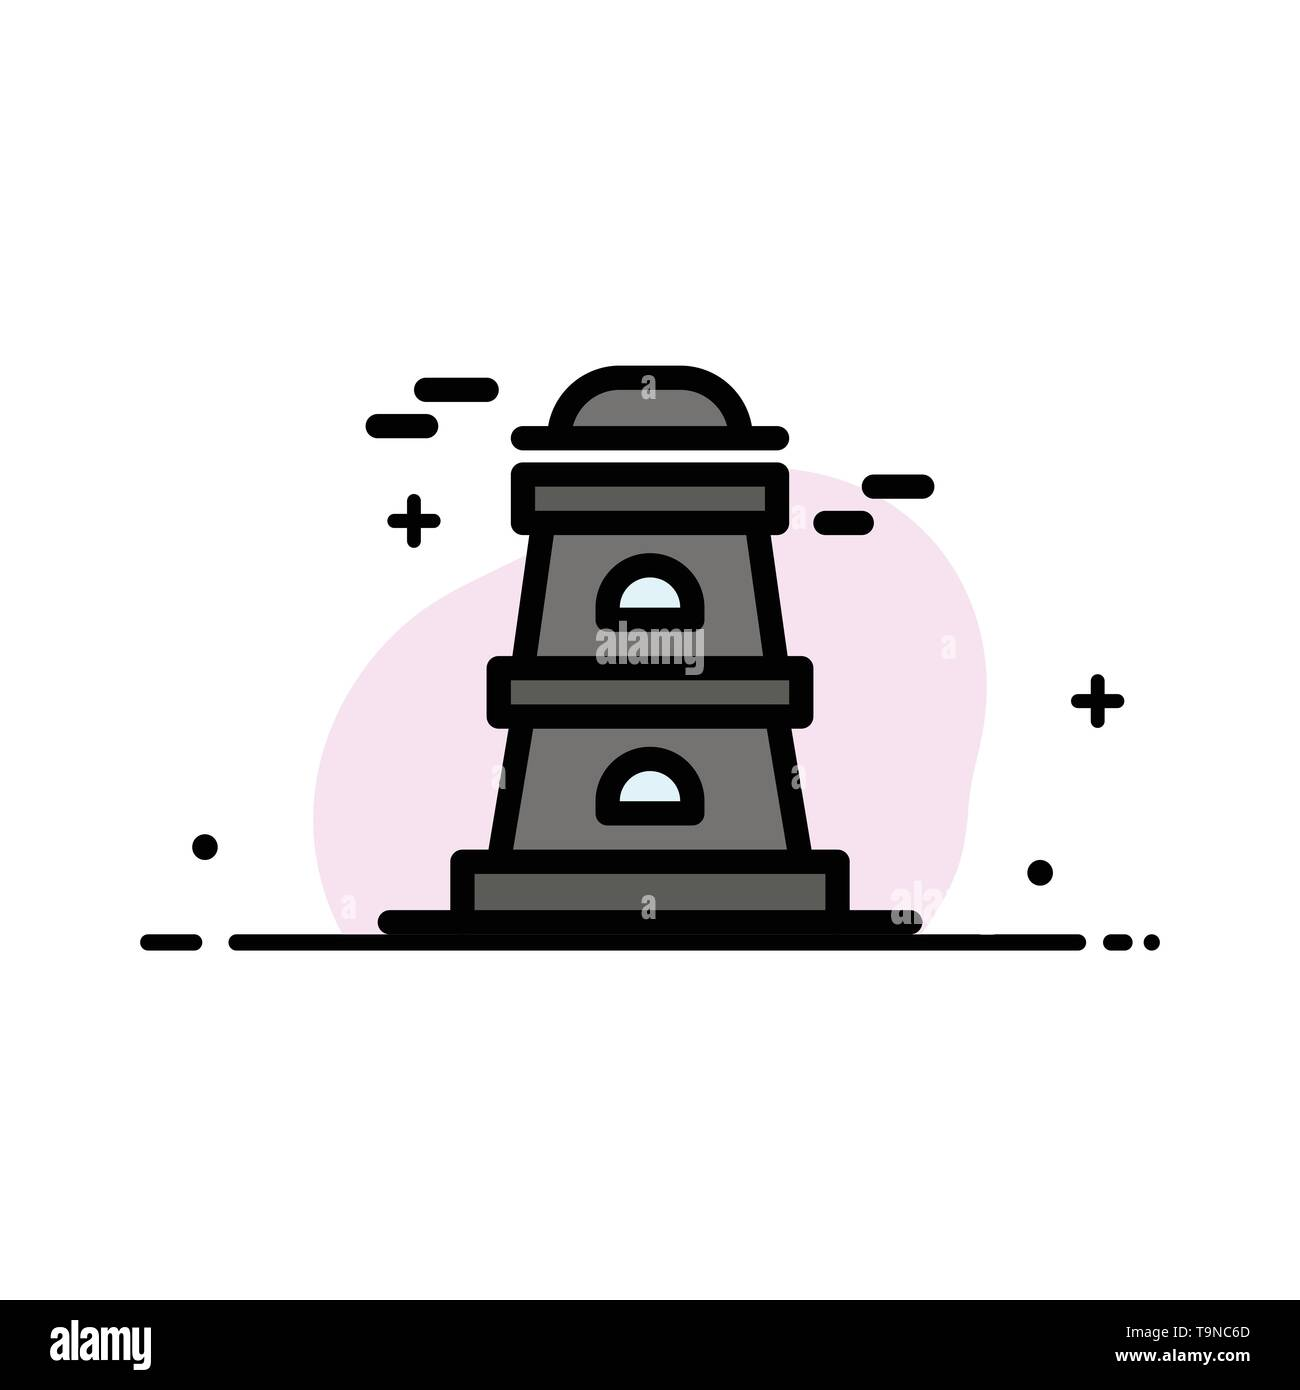 Observatory, Tower, Watchtower  Business Flat Line Filled Icon Vector Banner Template - Stock Image